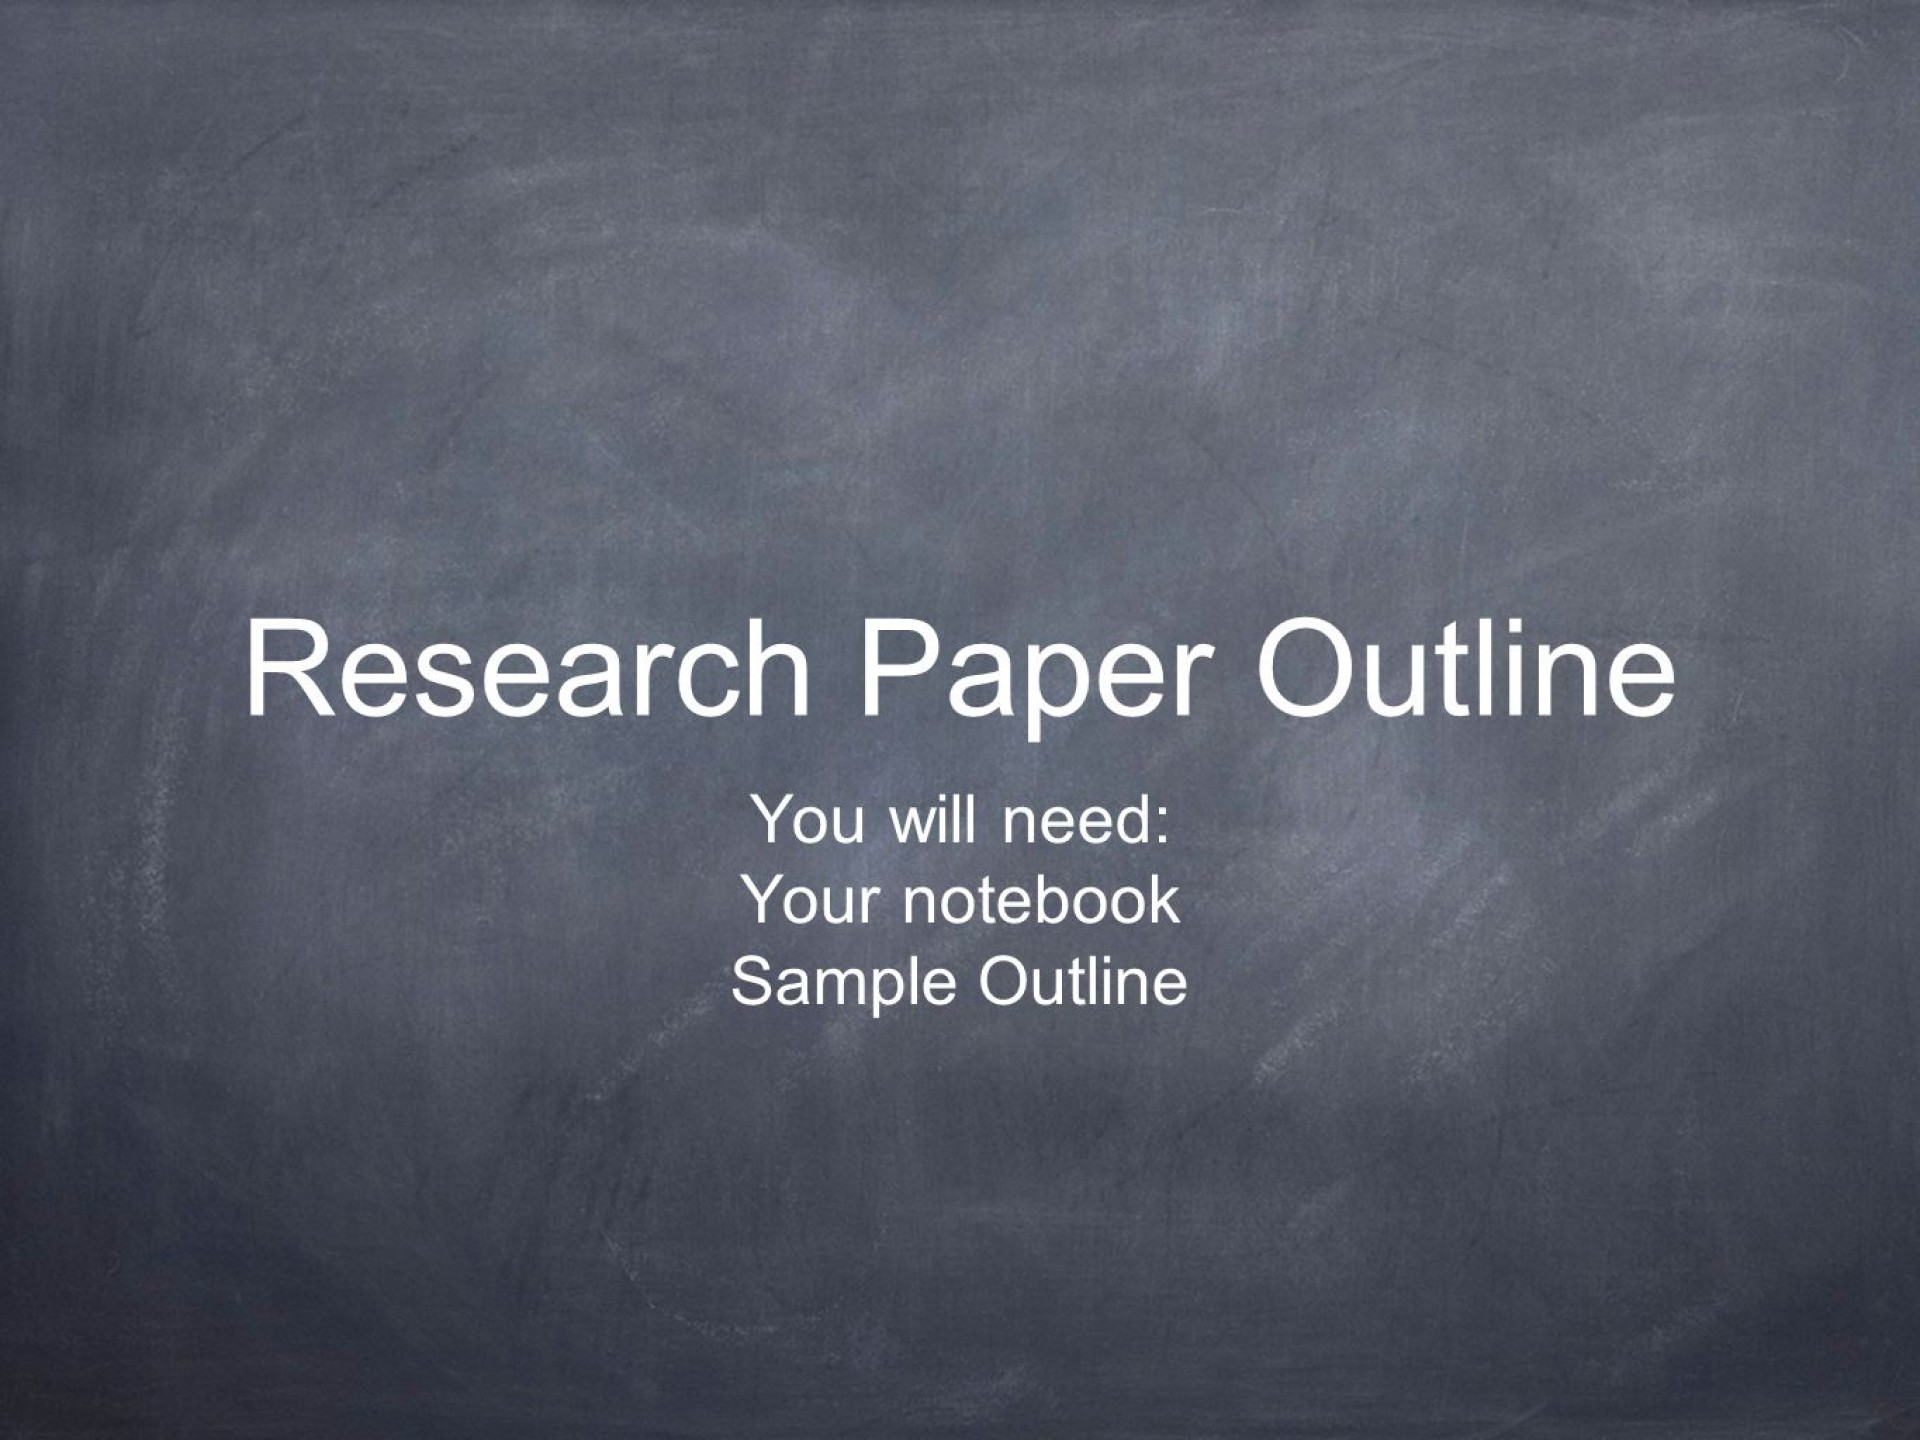 011 Outline For Research Paper Powerpoint Slide 1 Awesome Creating An A 1920